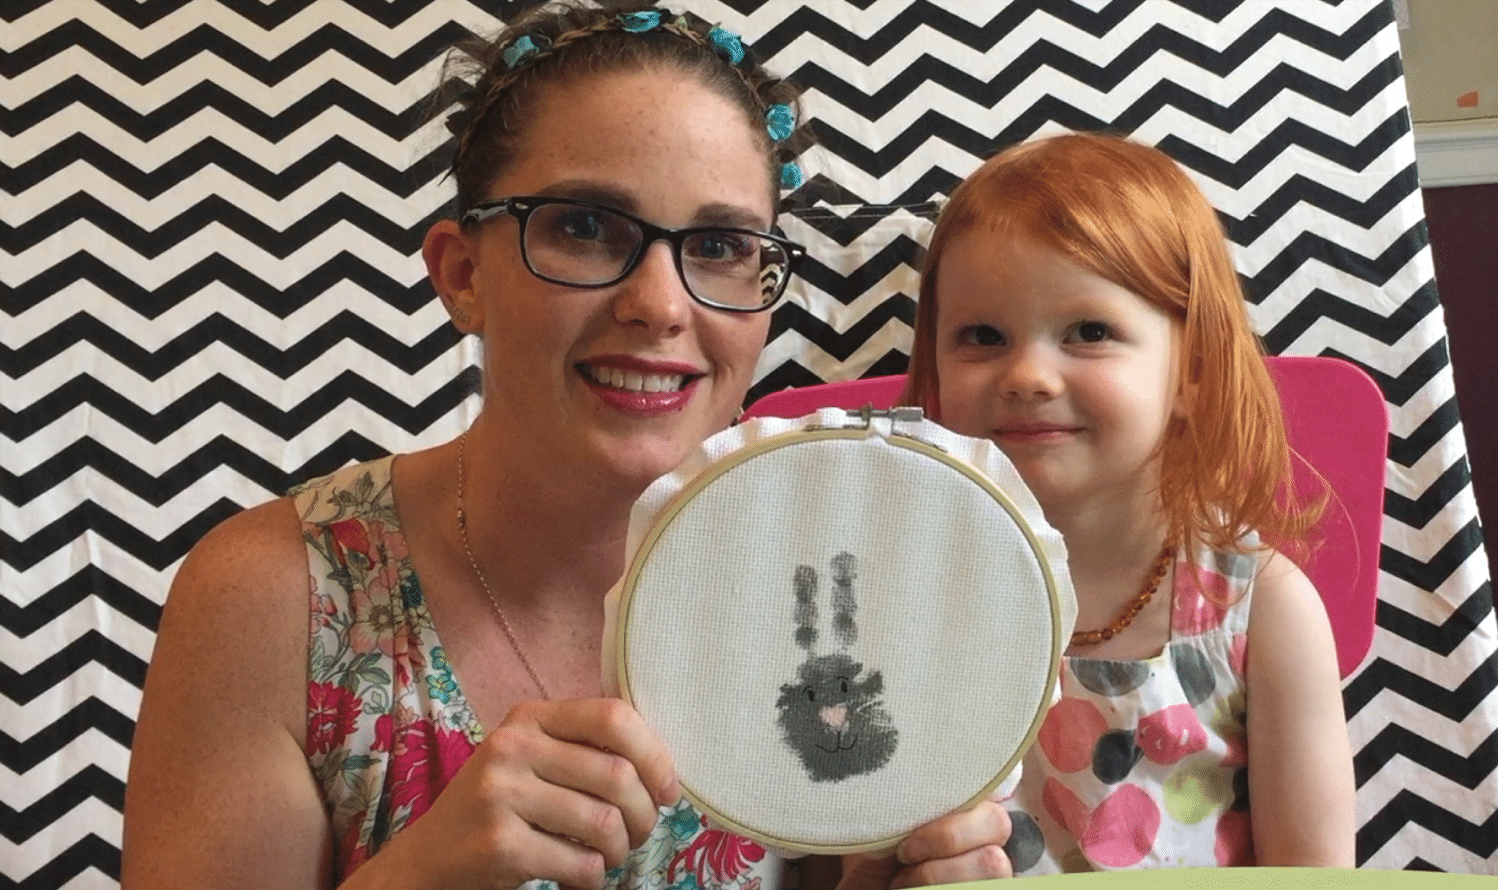 Handprint bunny craft in a loop frame